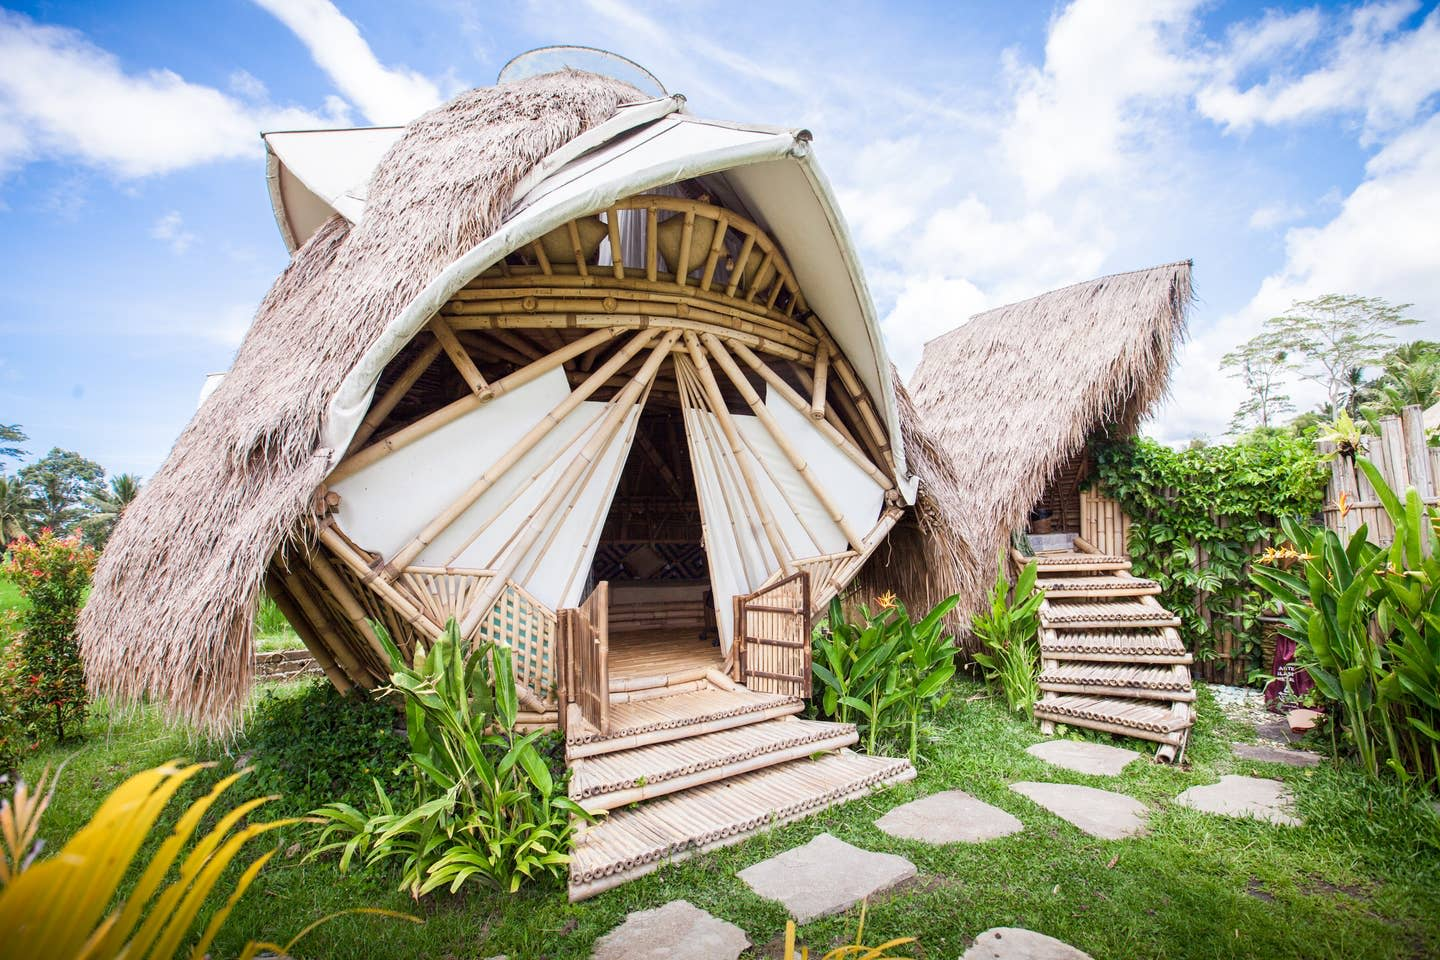 Eco-friendly sustainable bamboo dome bungalow in Bali, Indonesia